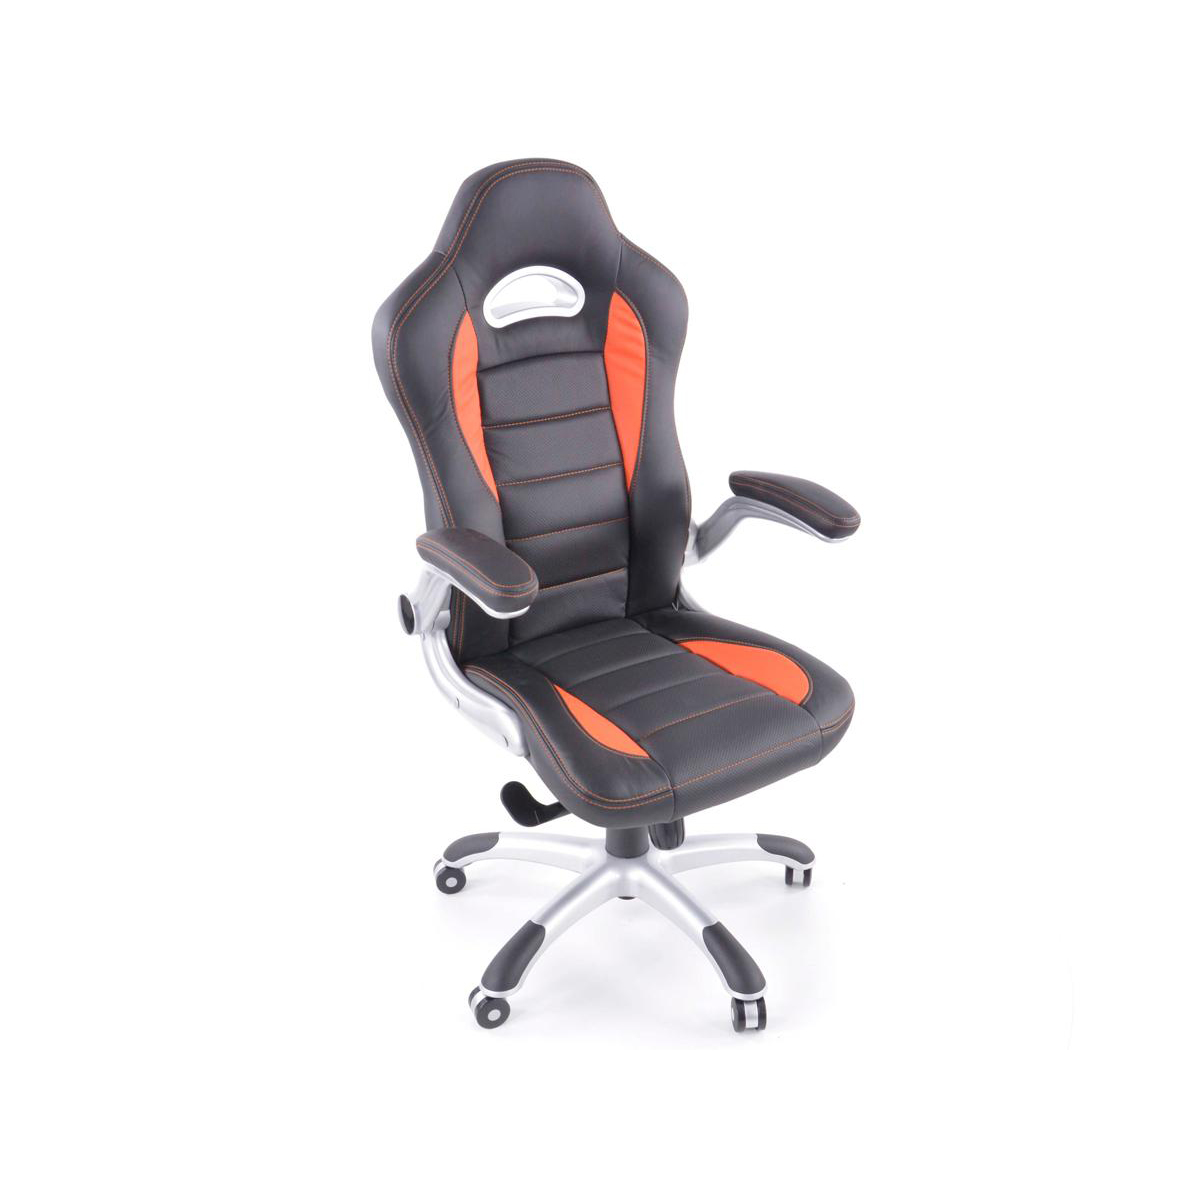 car seats office chairs orange black racing office chair bedroomlicious shabby chic bedrooms country cottage bedroom